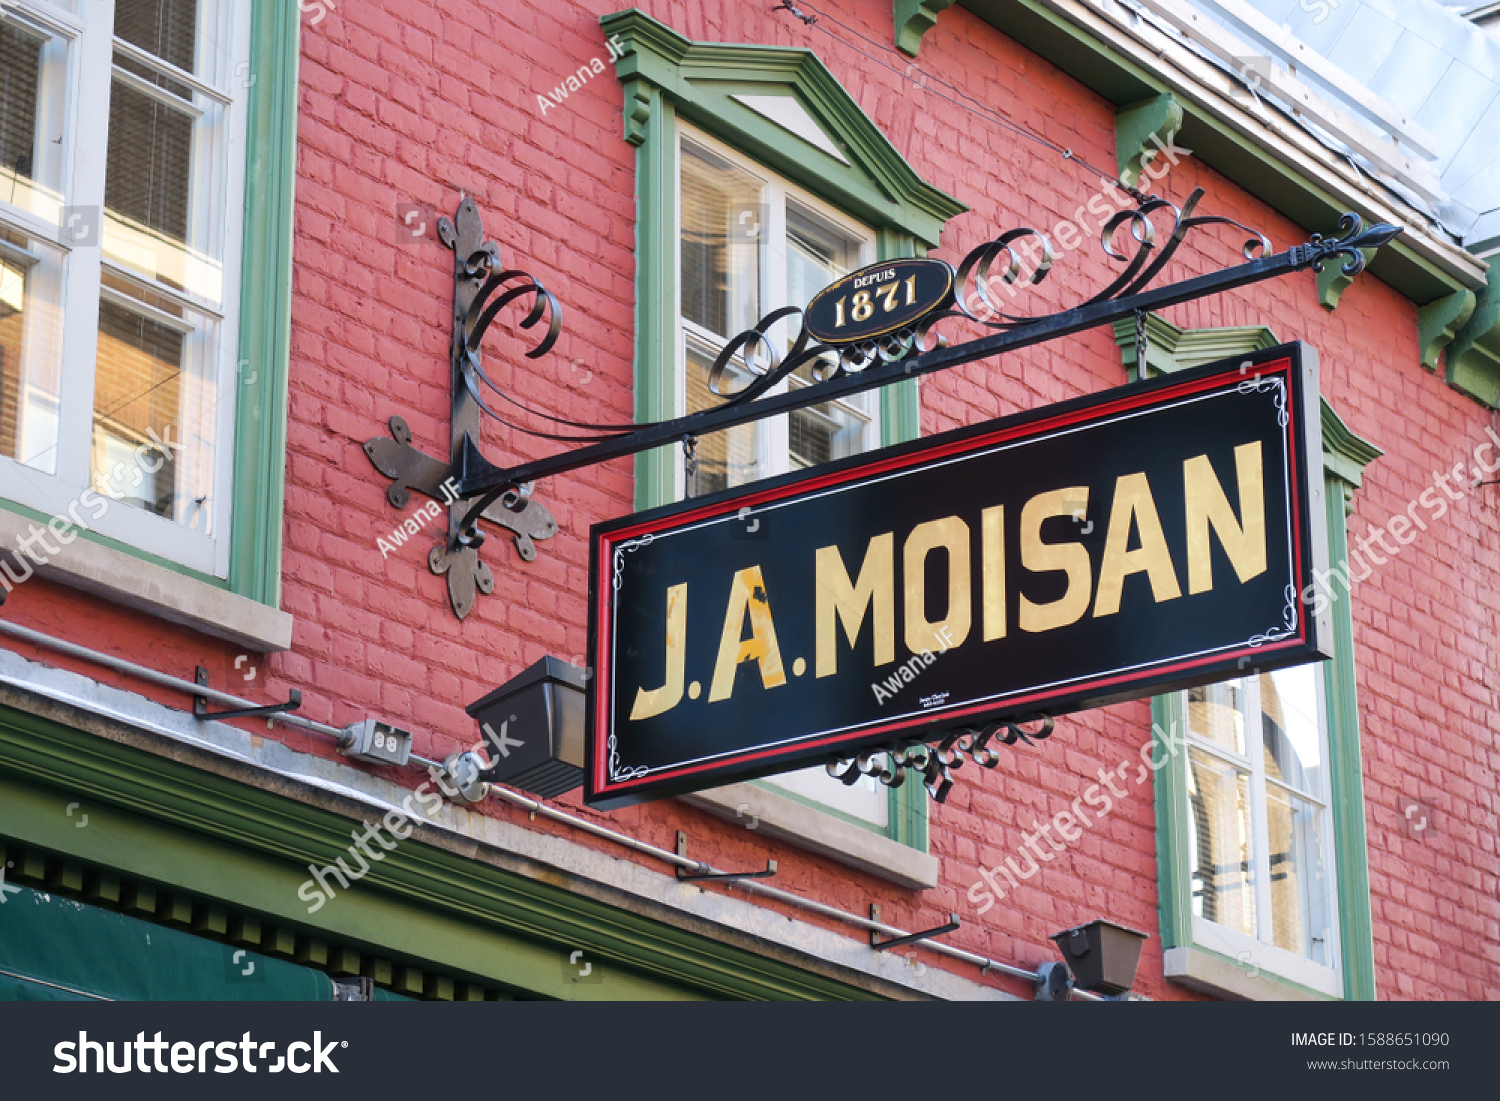 stock-photo-signboard-of-j-a-moisan-groc